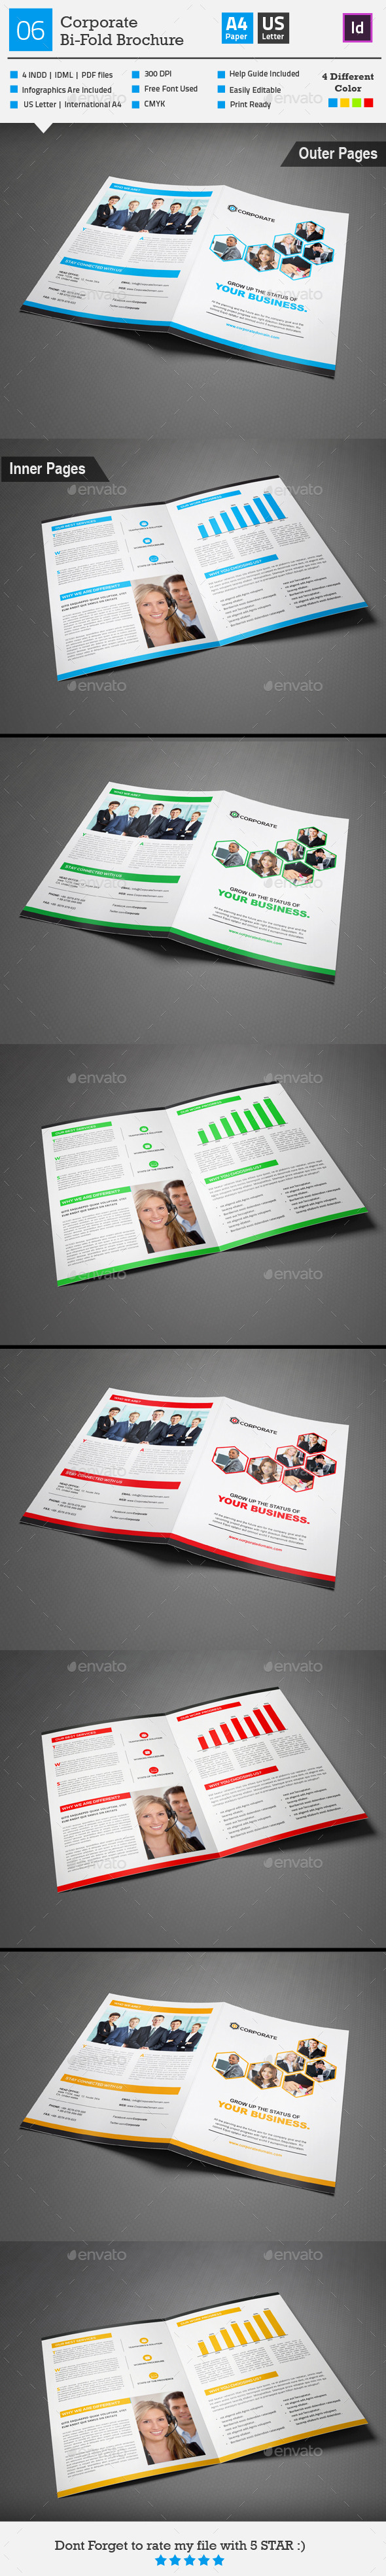 GraphicRiver Corporate Bi-fold Brochure 06 9244660